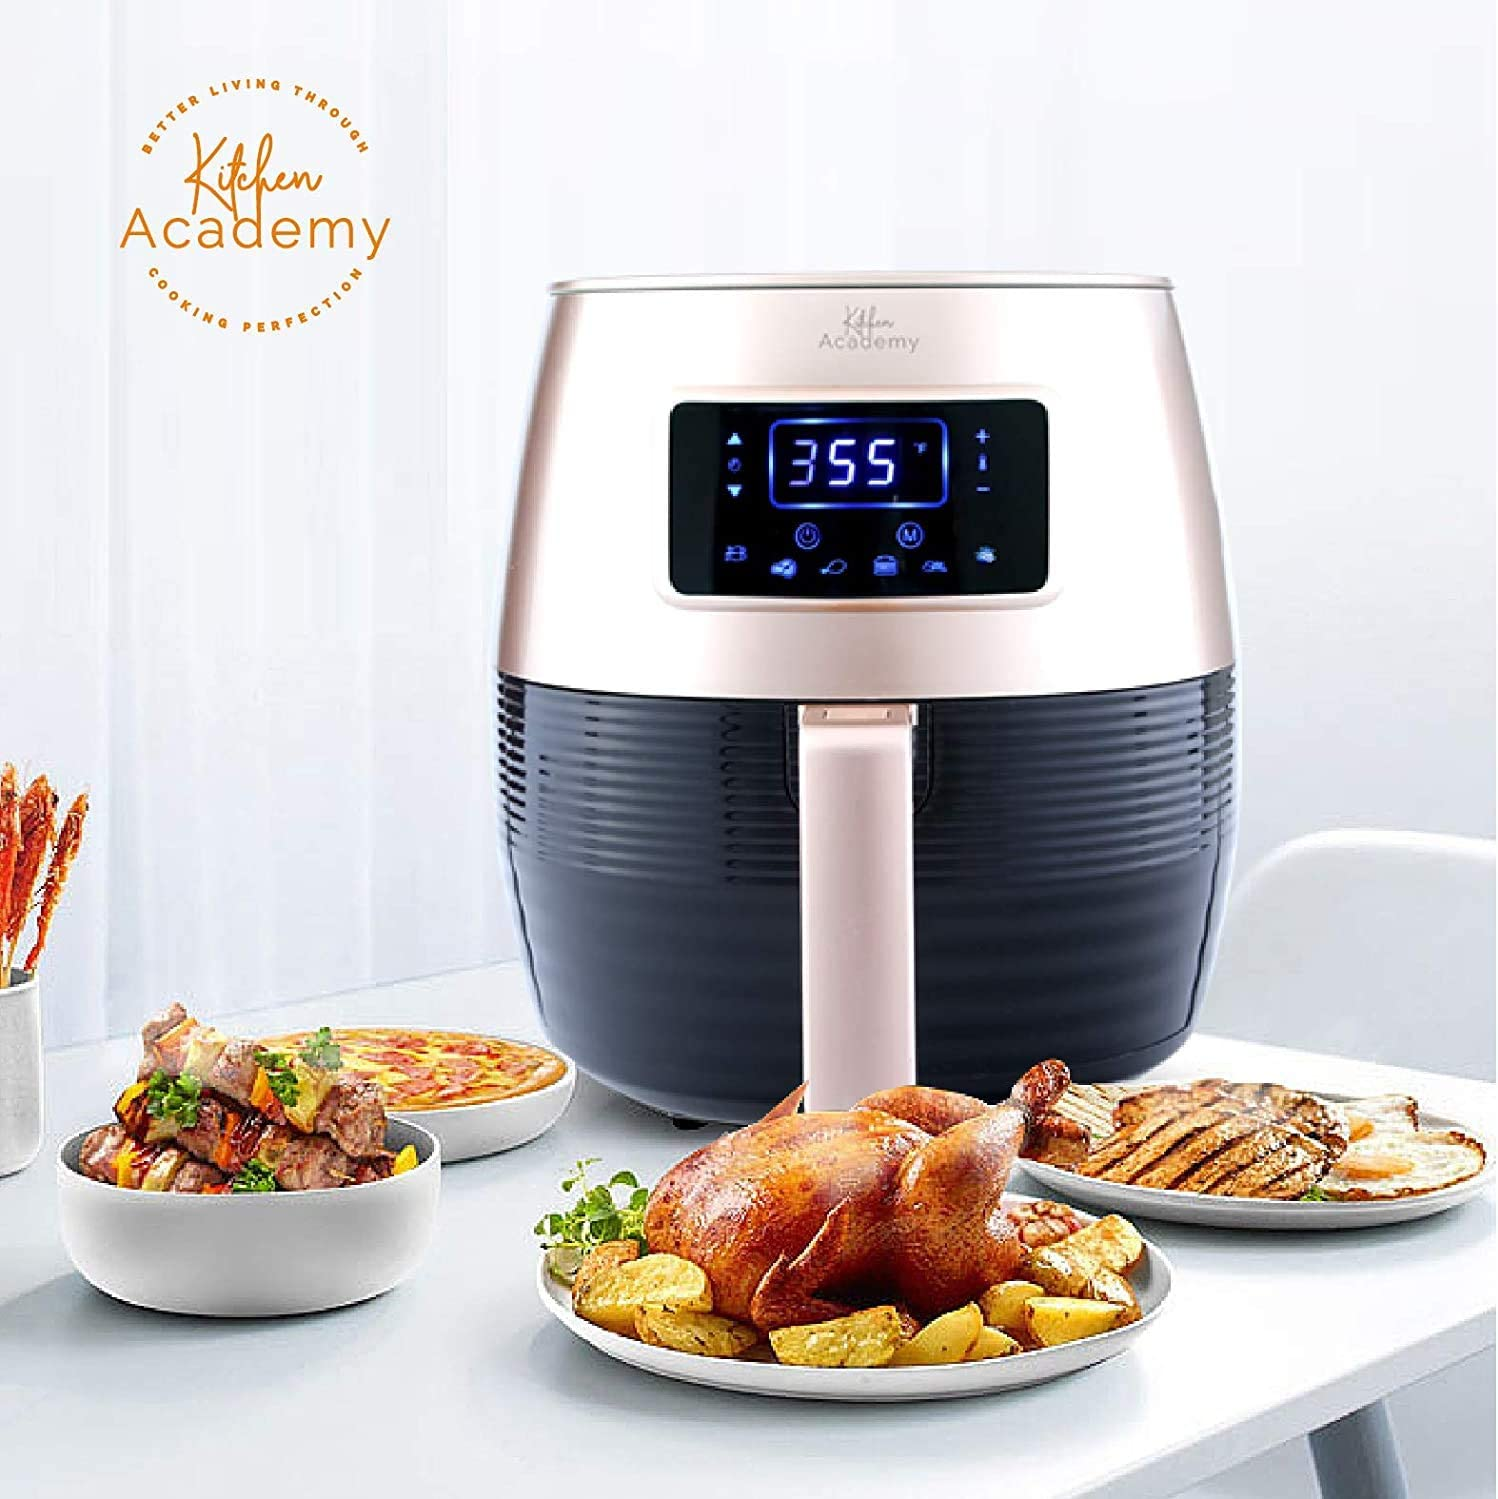 Kitchen Academy Air Fryer (50 Recipes), 5.5 Qt Electric Hot Air Fryers XL Oven Oilless Cooker, 7 Cooking Preset, LED Digital Touchscreen,Nonstick Basket,ETL/FDA Listed,1400W, Gold